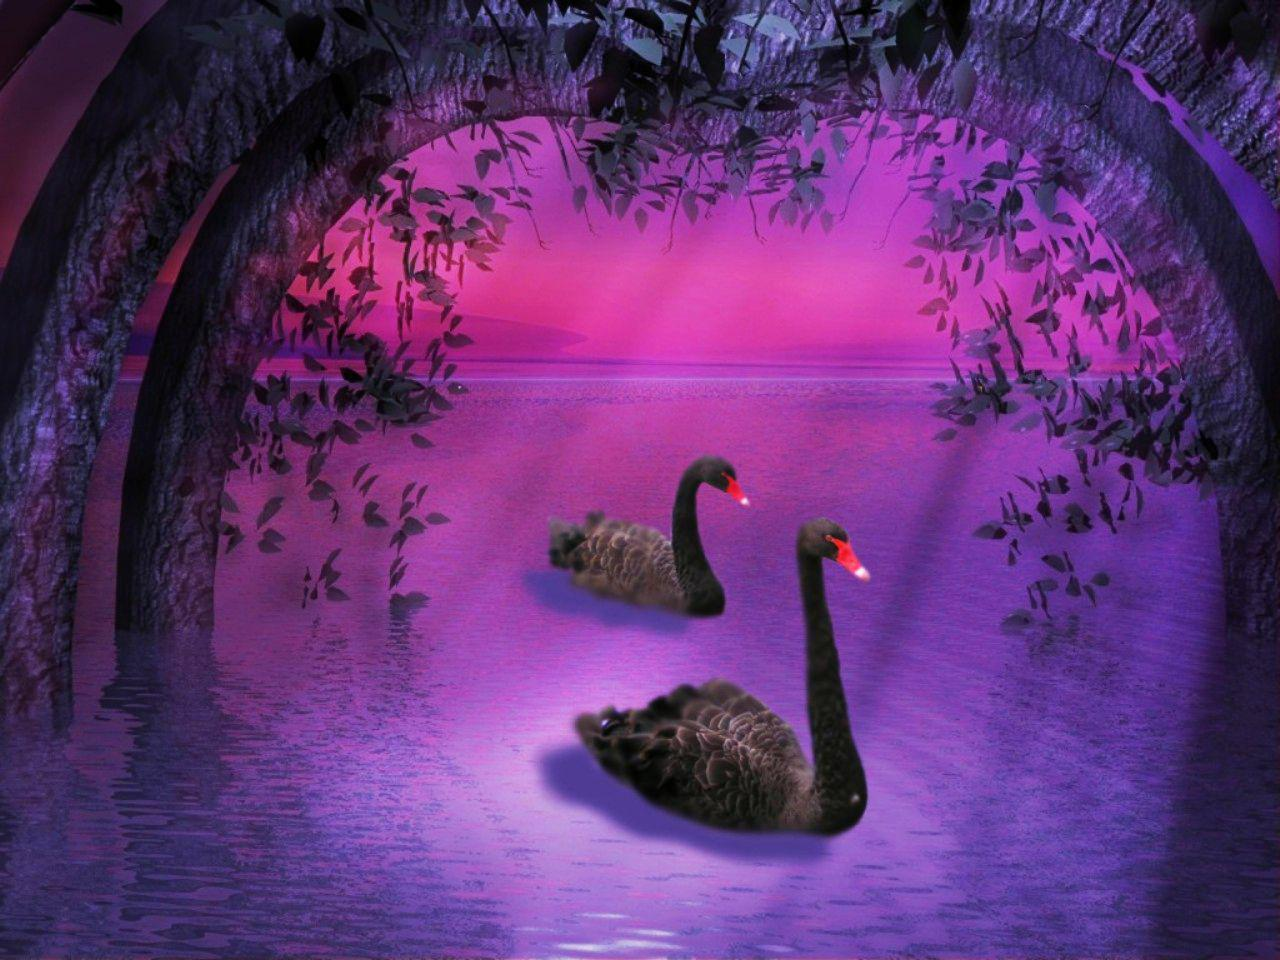 BLACK SWANS IN PURPLE NATURE WALLPAPER   151734   HD Wallpapers 1280x960